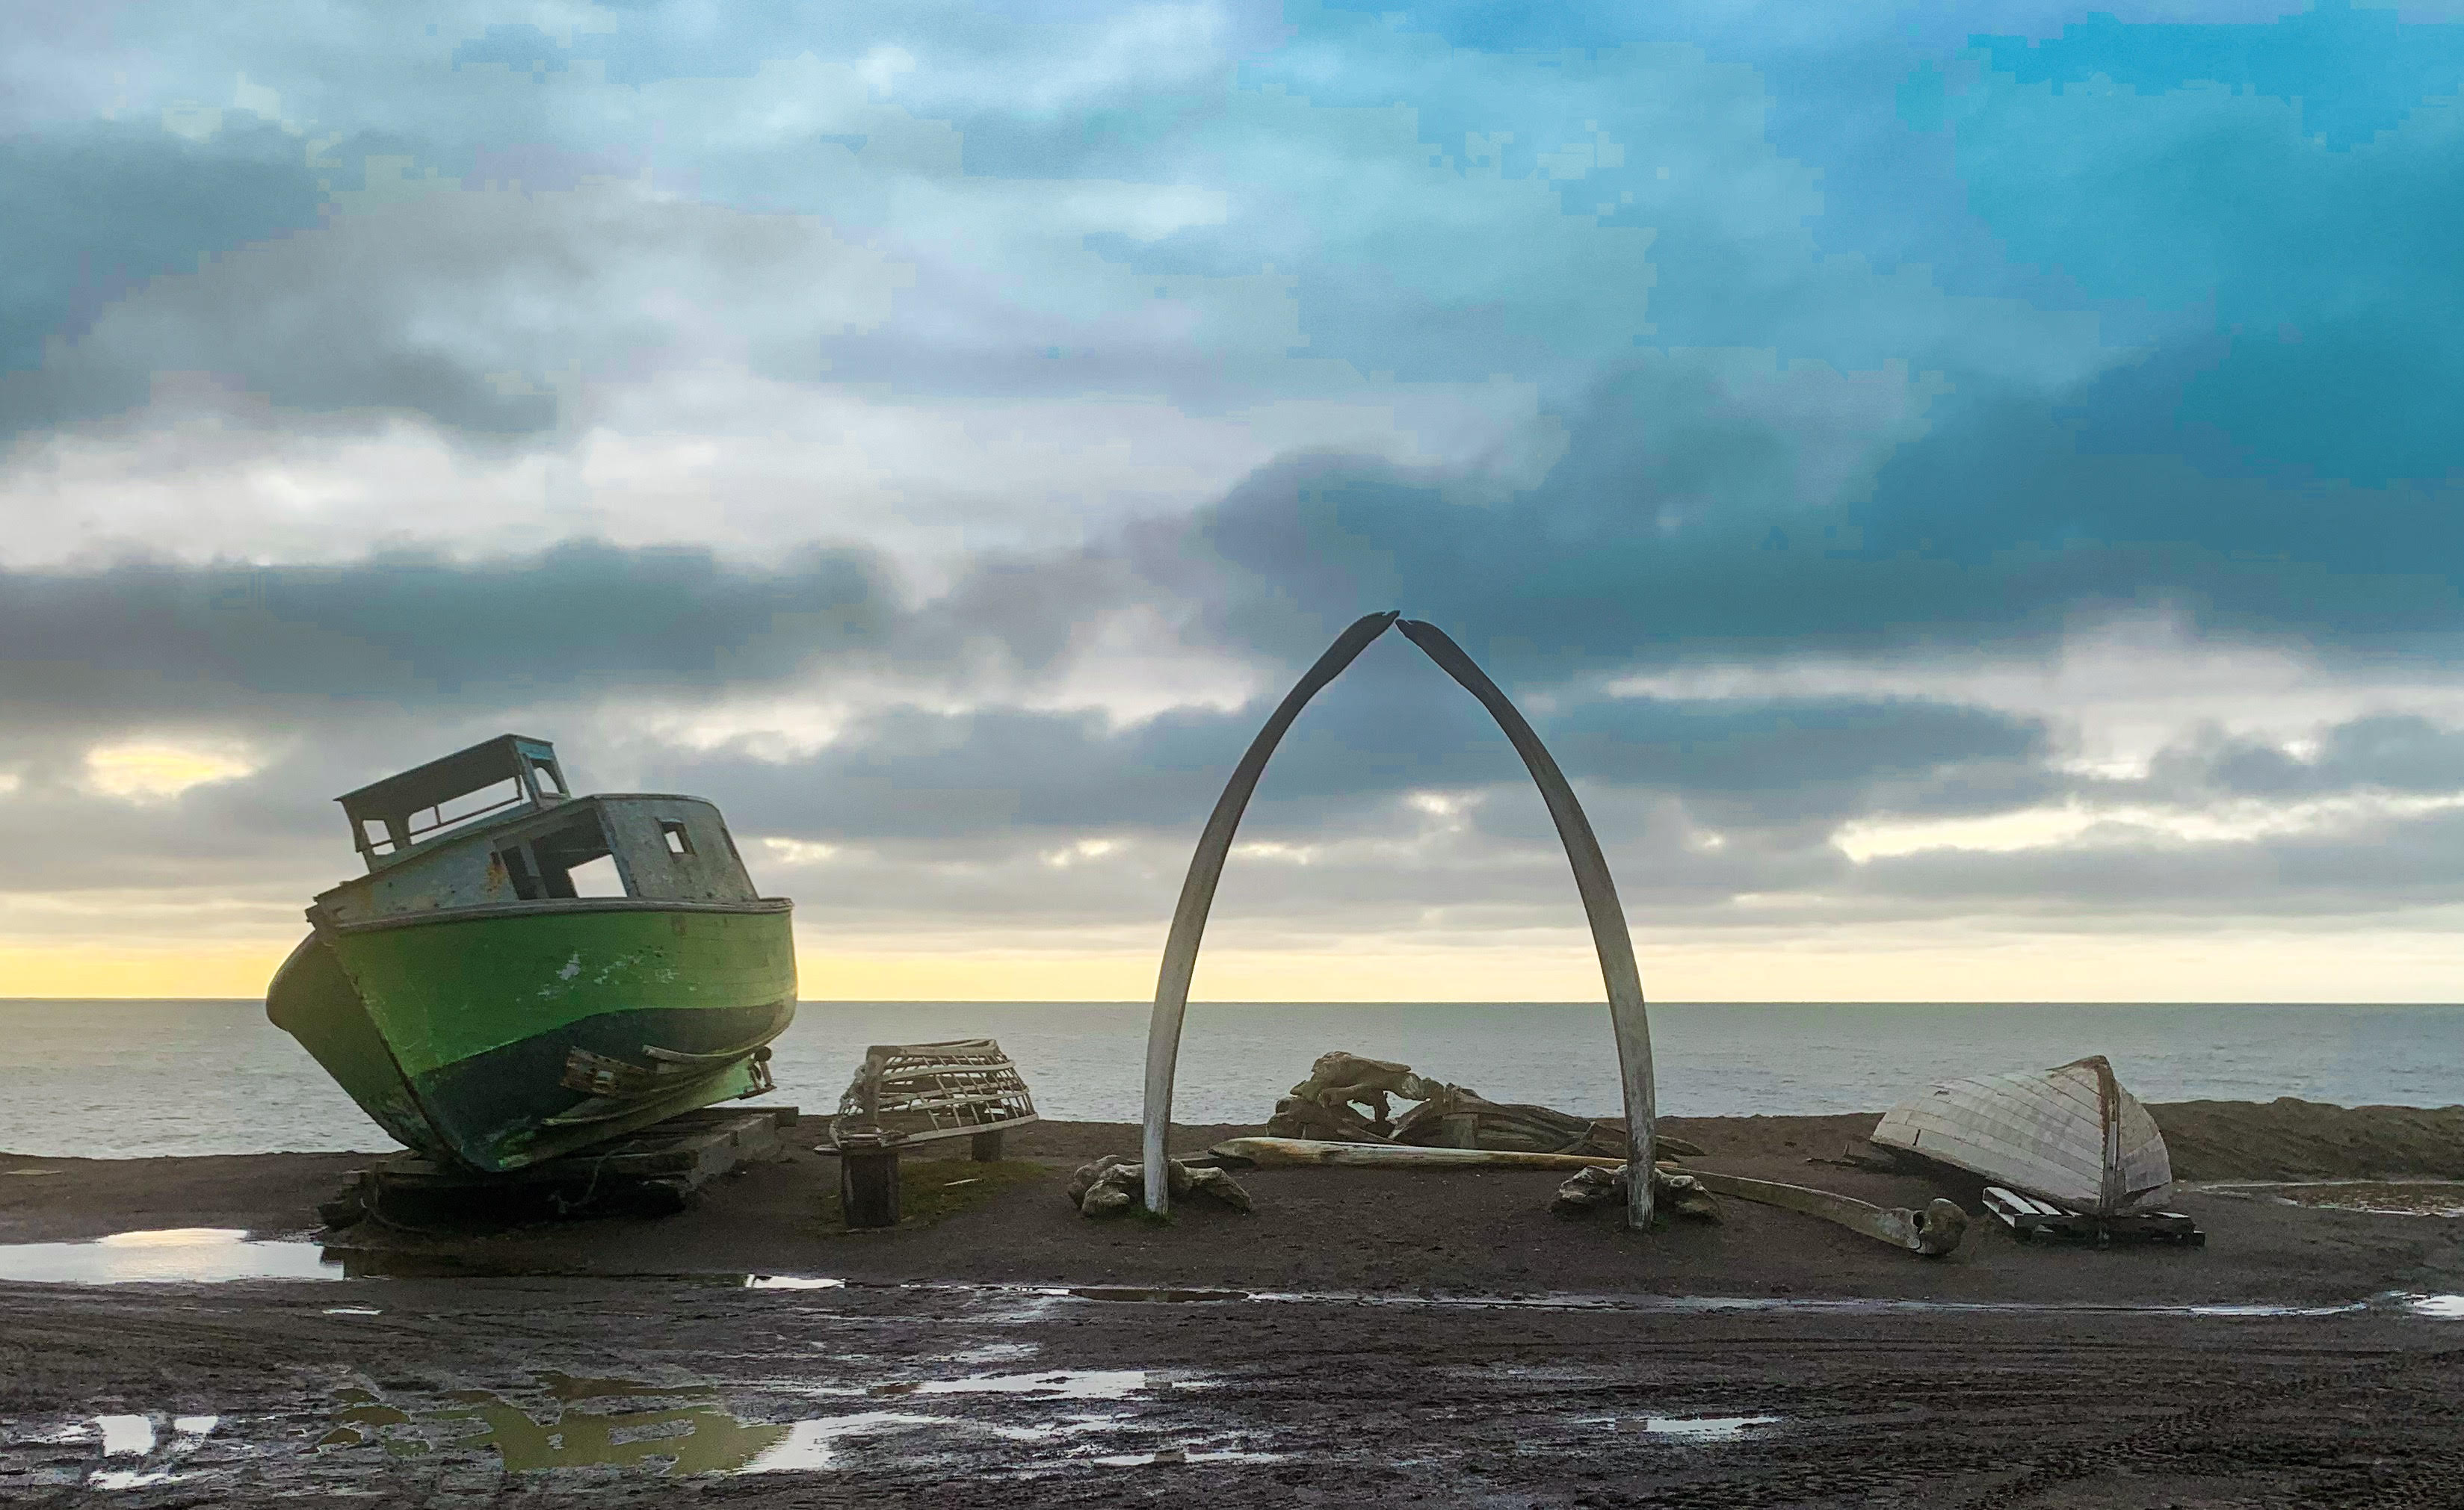 Things to do in Barrow, Alaska (Utqiagvik): A Trip to the Top of the World (or at Least the US) - The Daily Adventures of Me